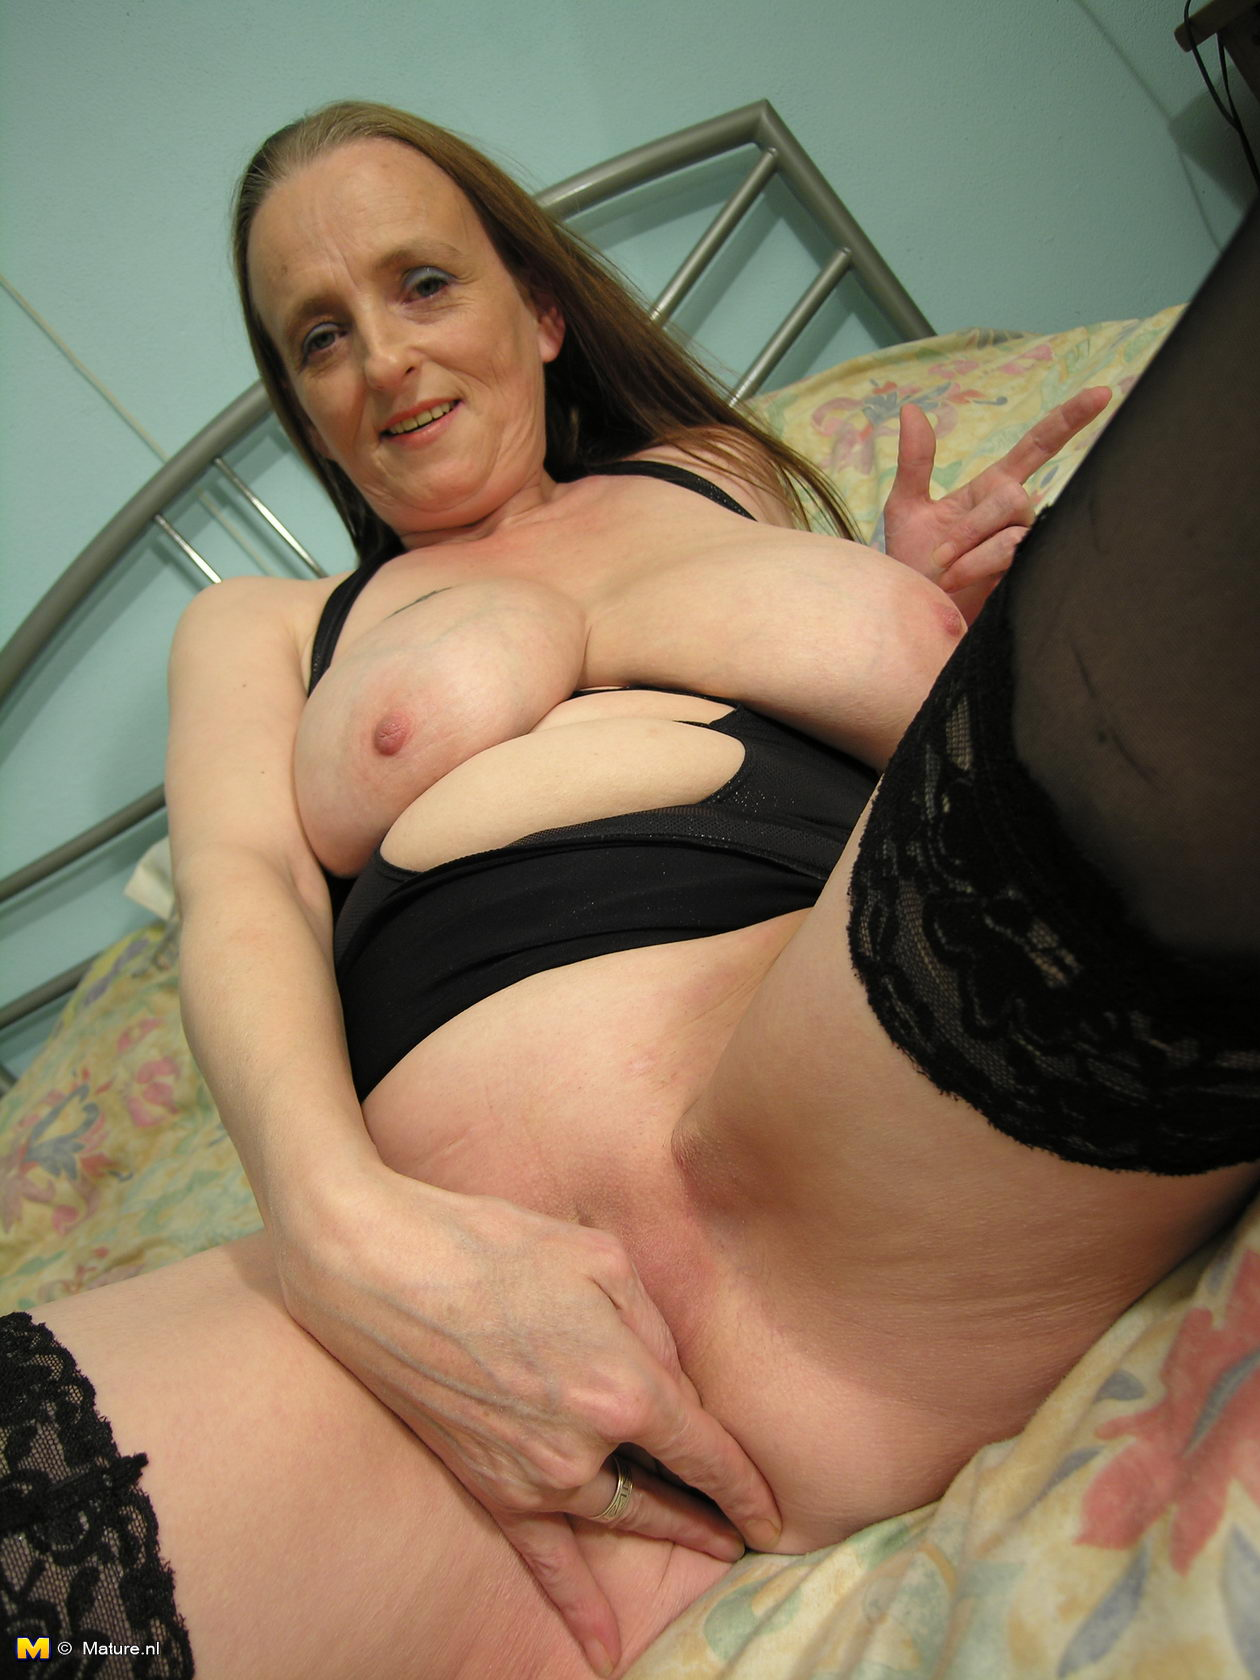 Mature in a long run with stockings anal amp dp full scene 2